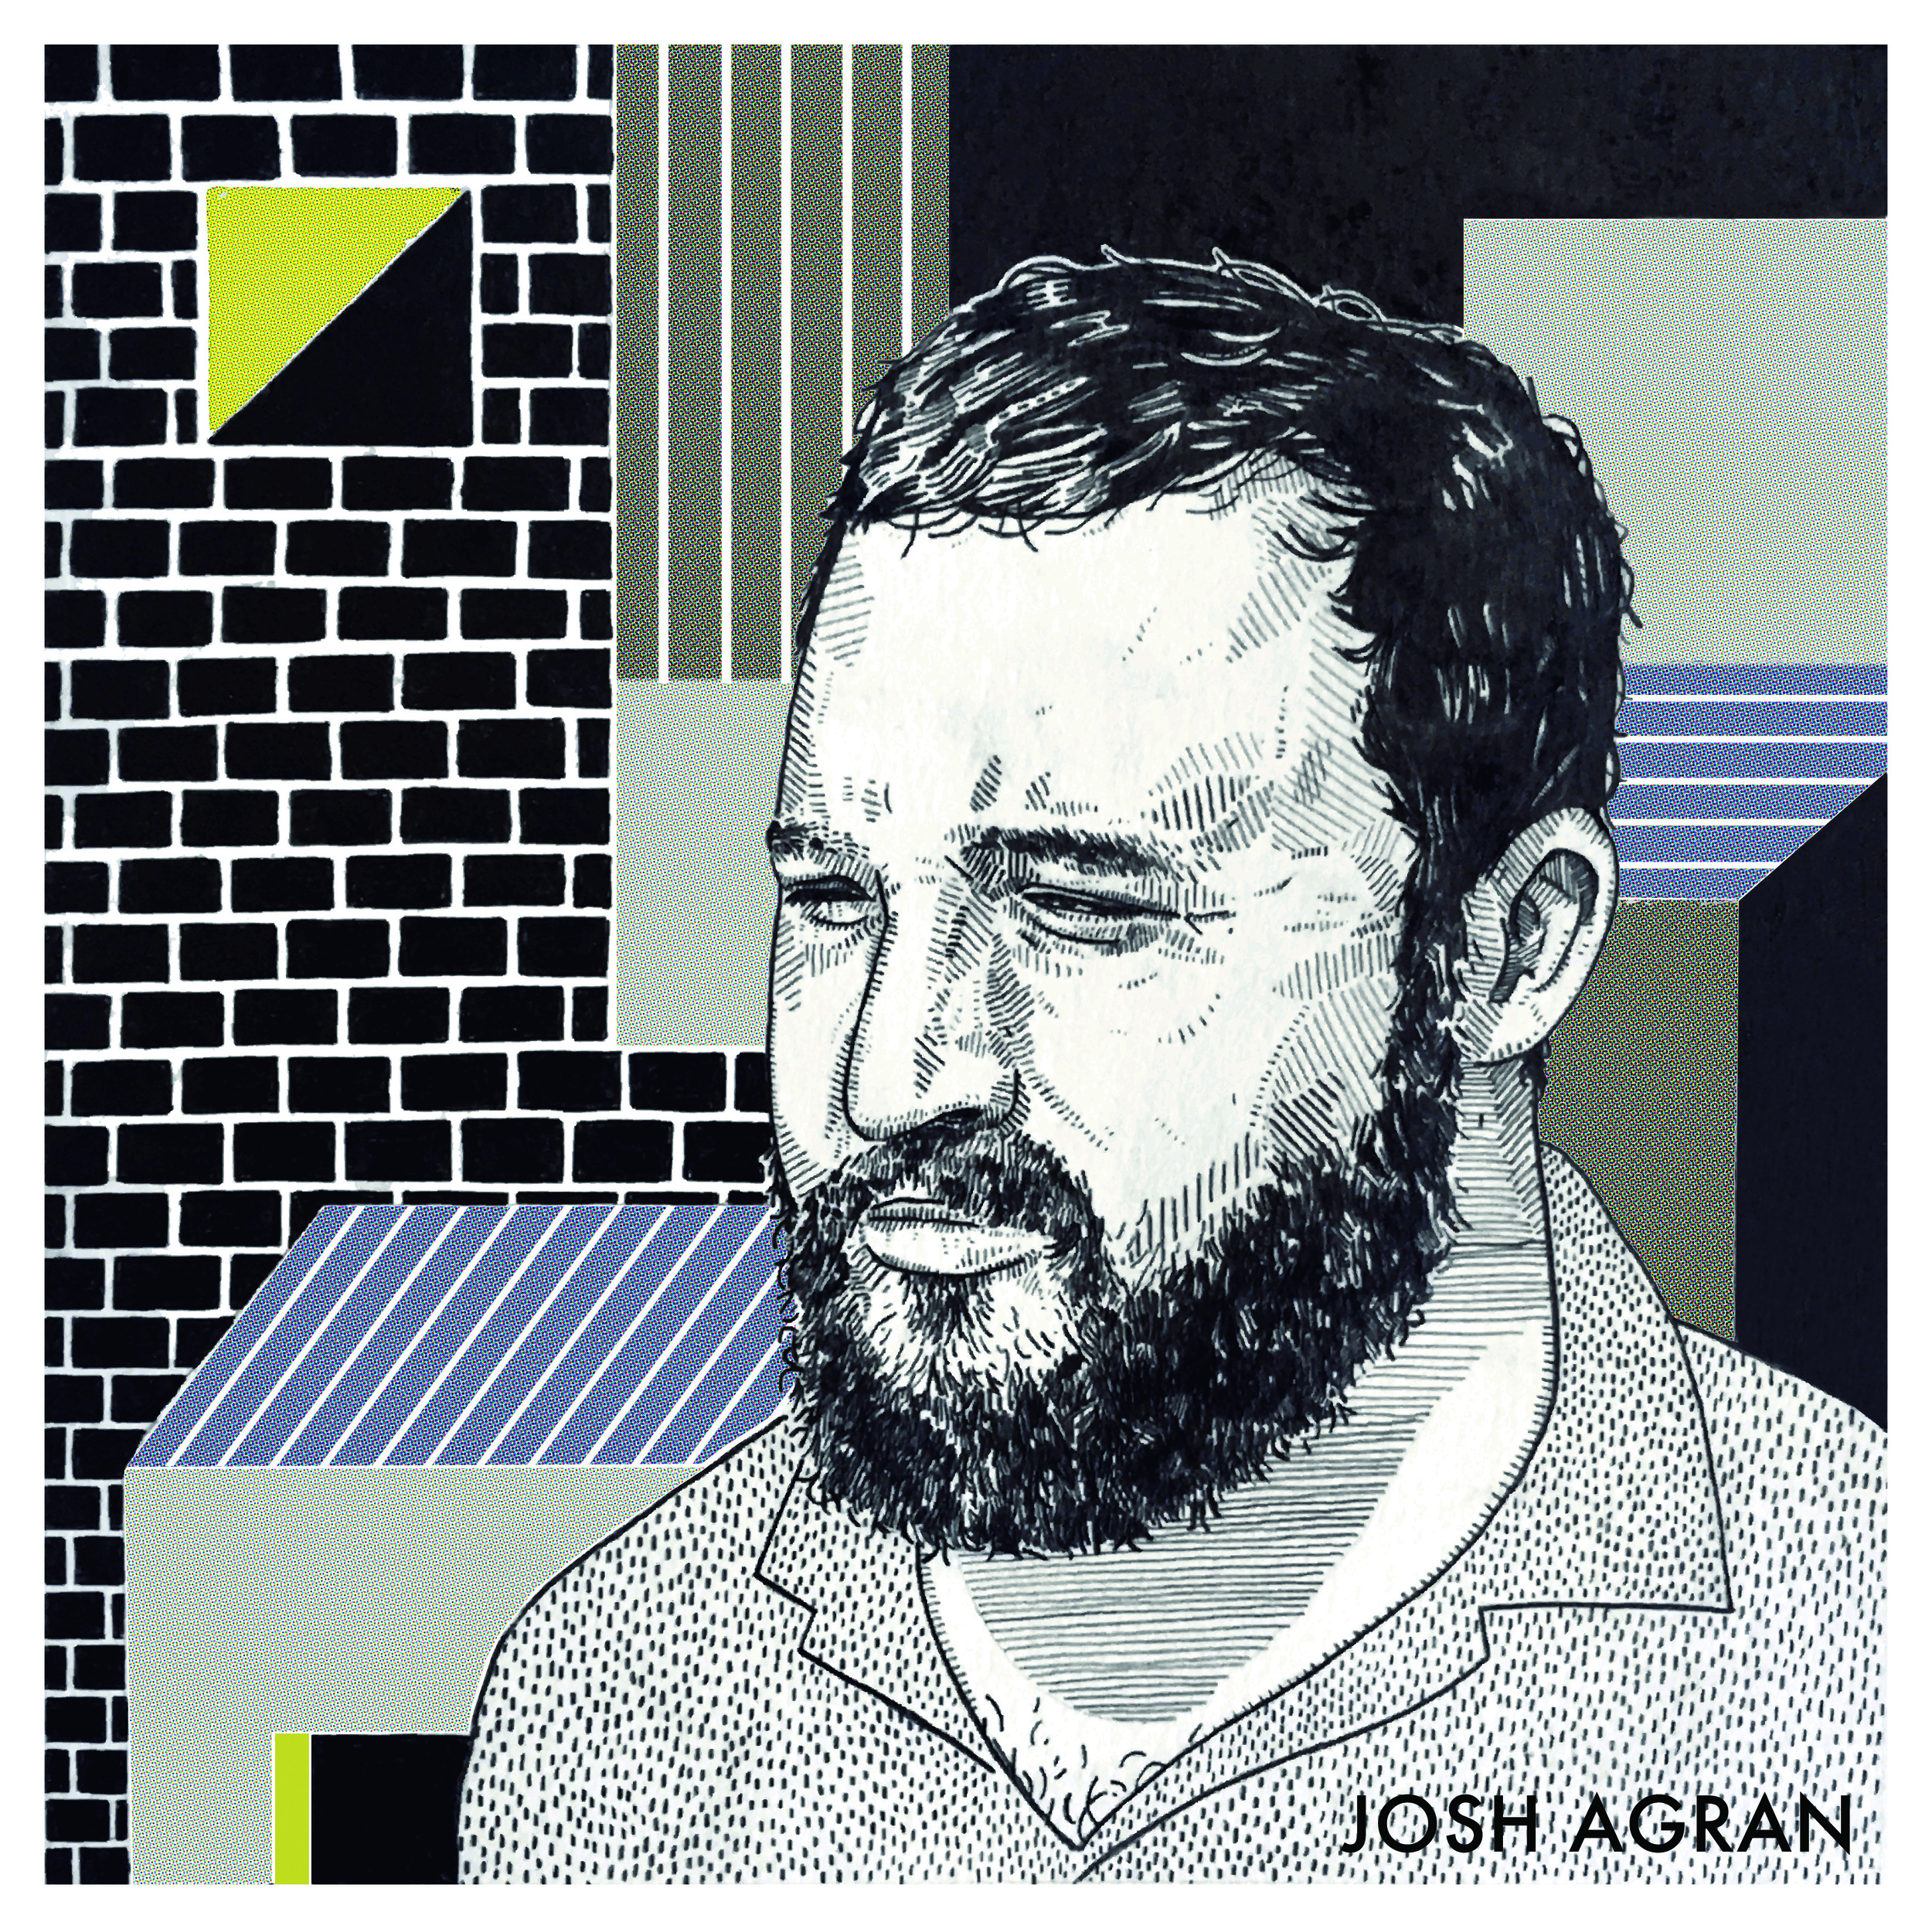 Josh Agran Digital Album